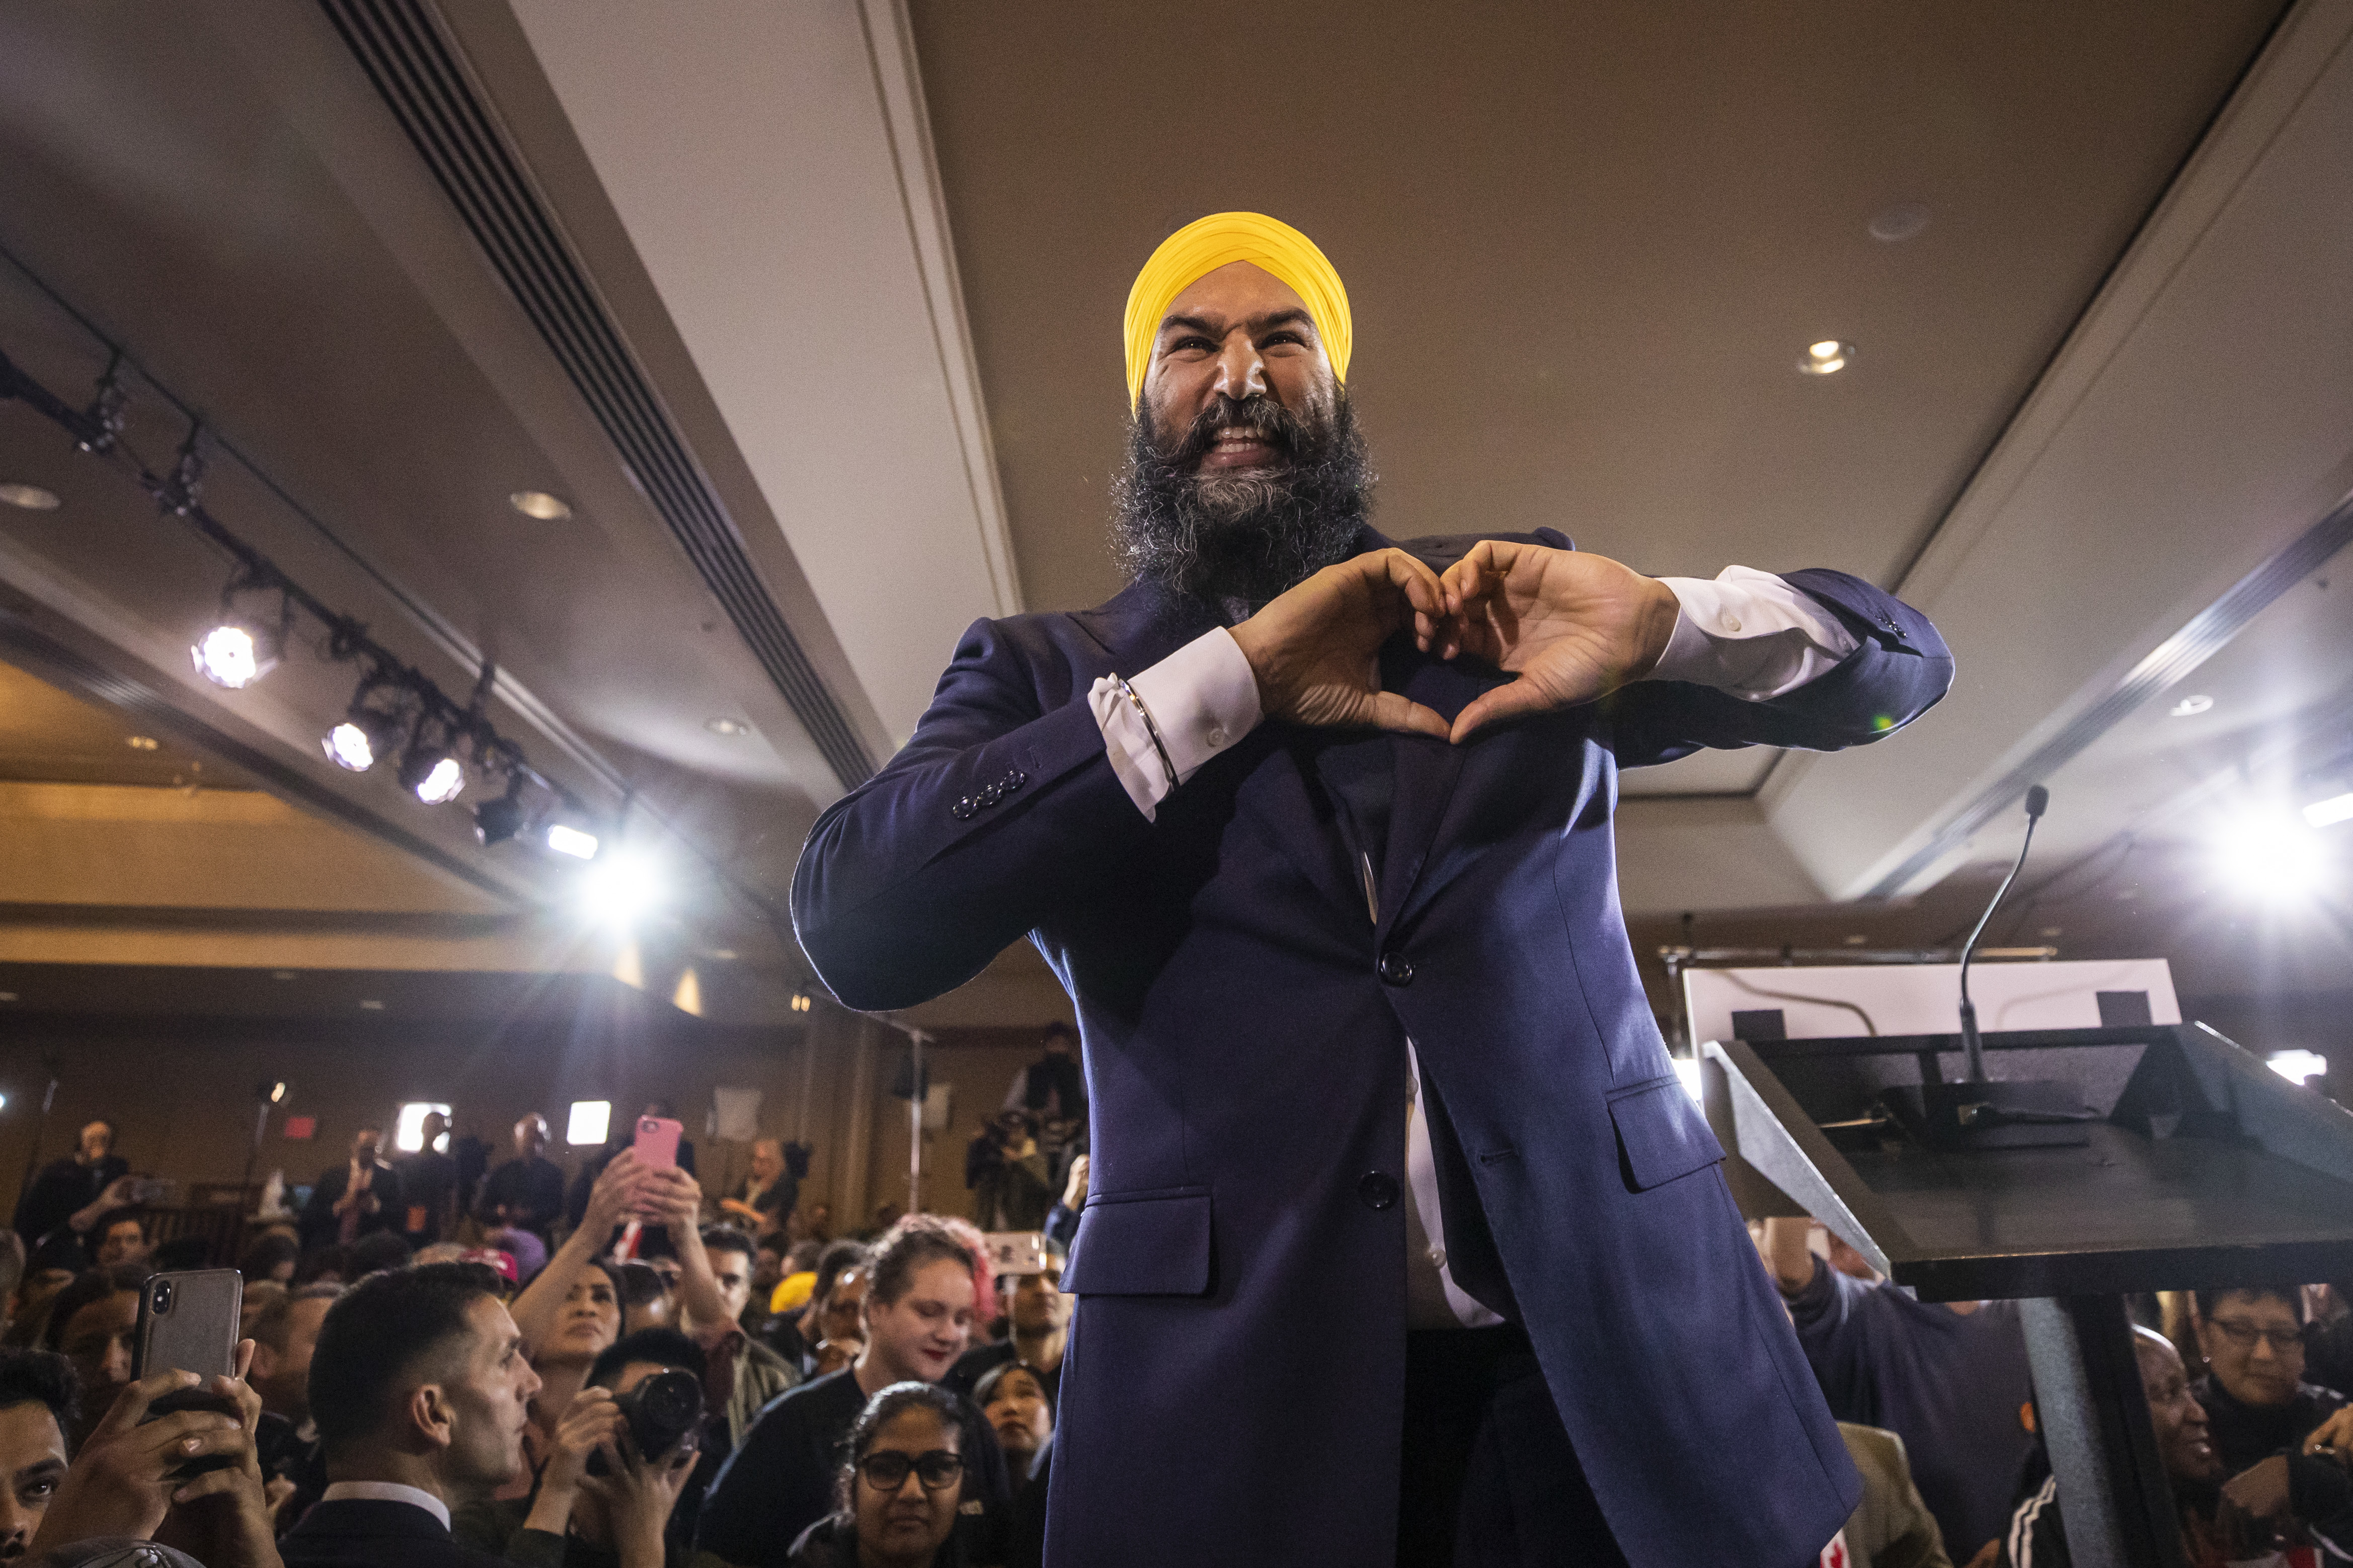 NDP leader Jagmeet Singh speaks to supporters at the NDP party headquarters in Burnaby, B.C. on election night, Oct. 21, 2019. (Ben Nelms/CBC)